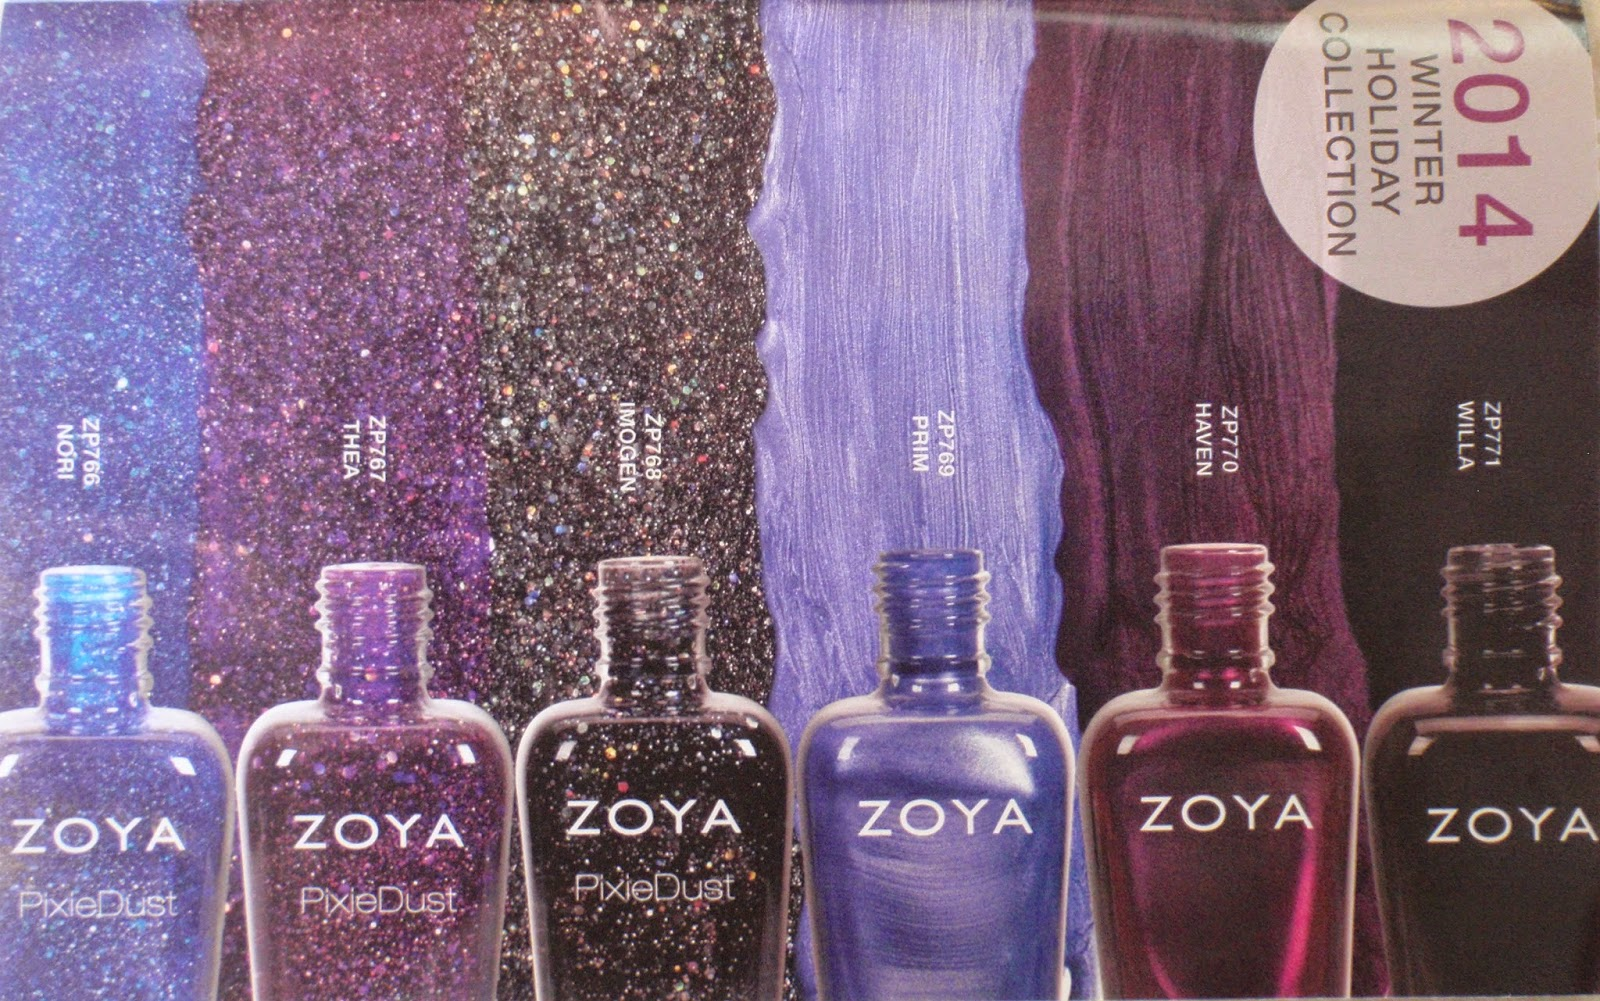 Zoya's 2014 winter/holiday collection.